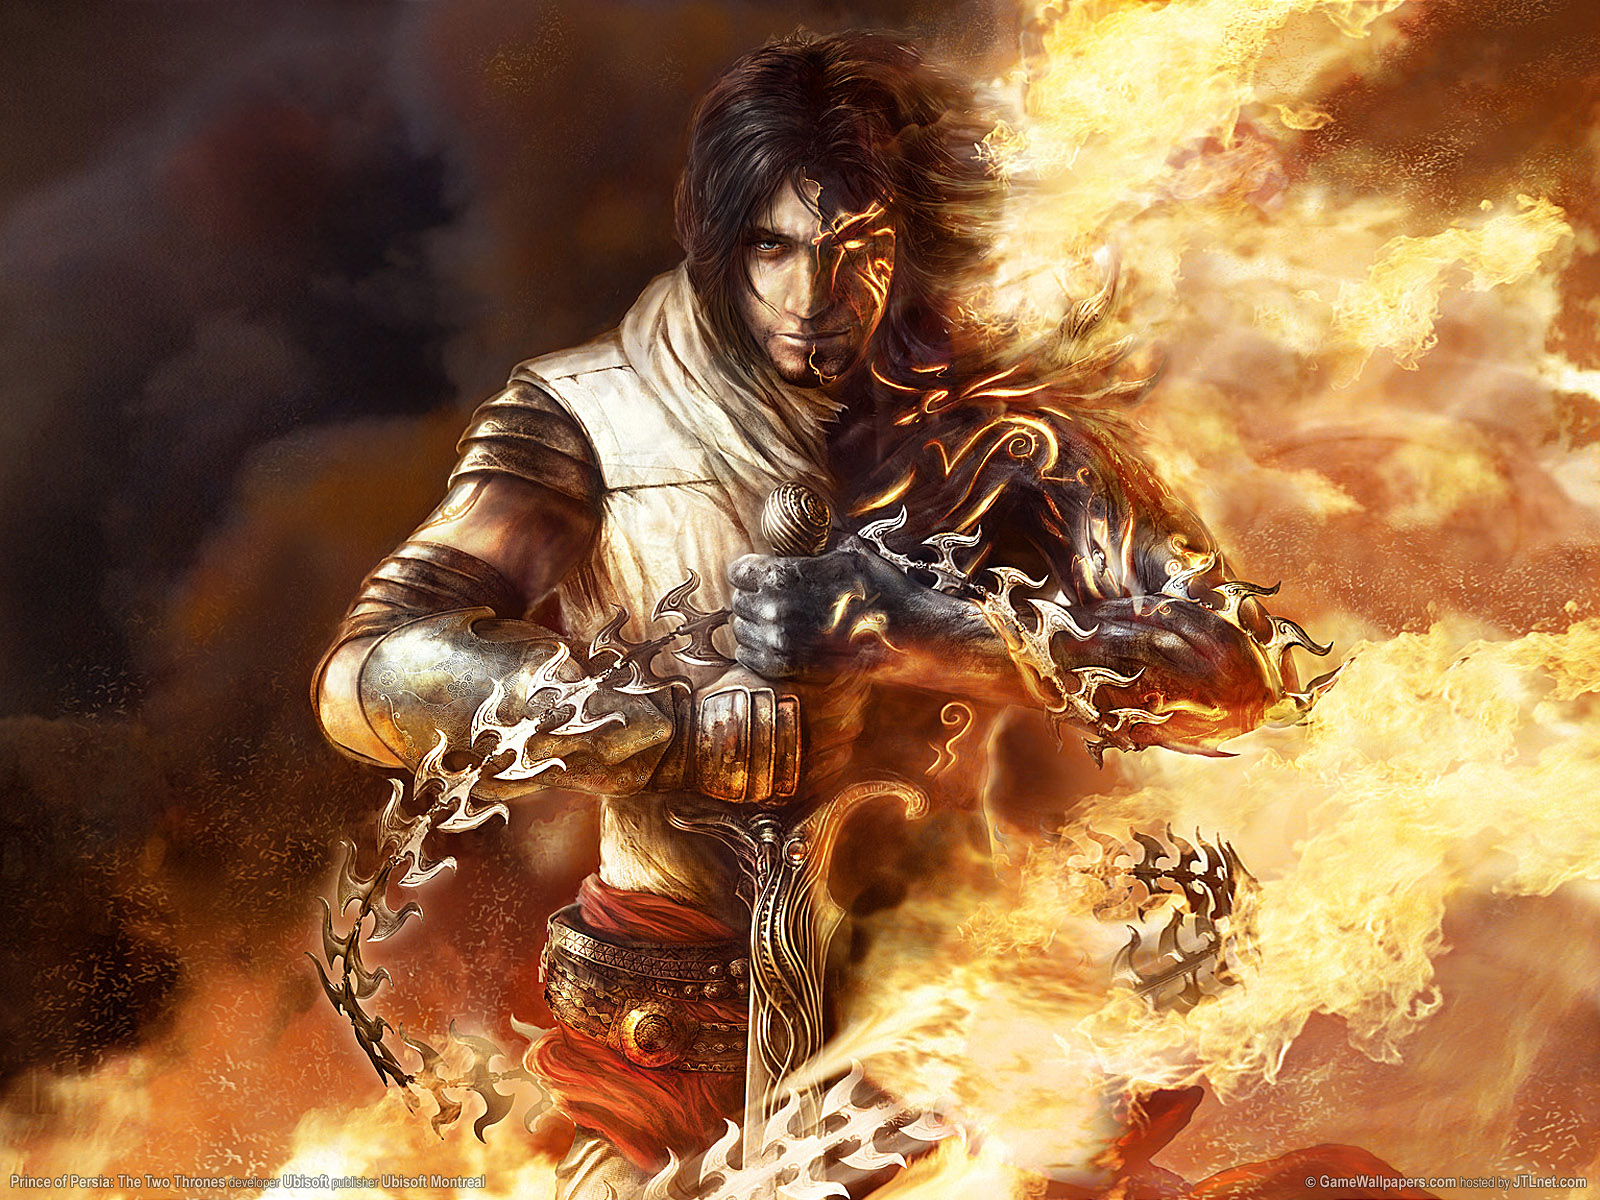 7.jpg - Prince of Persia: The Two Thrones